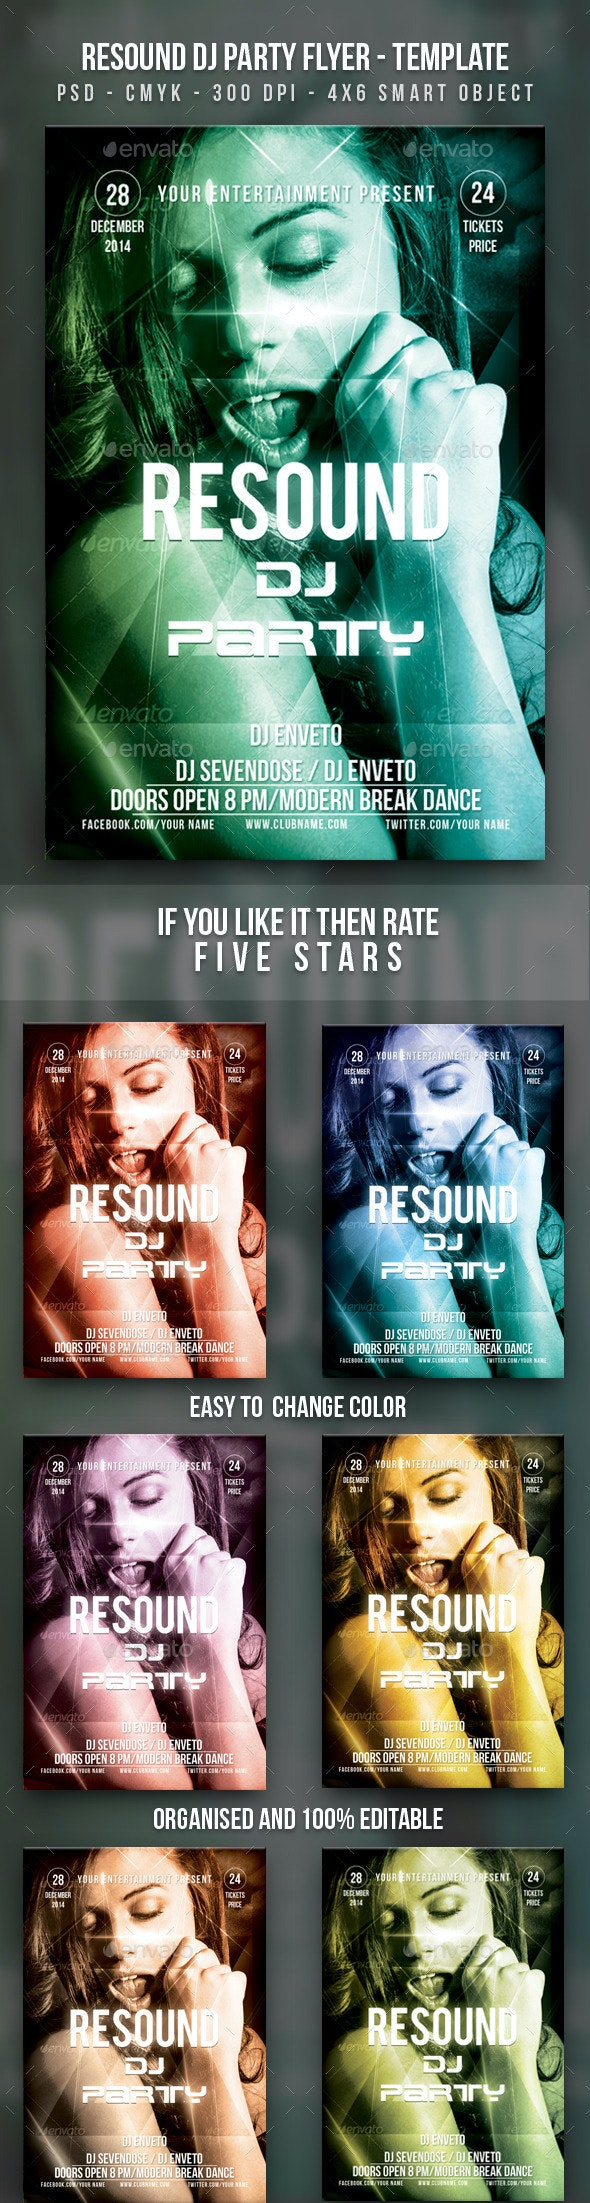 Resound DJ Party Flyer - Clubs & Parties Events